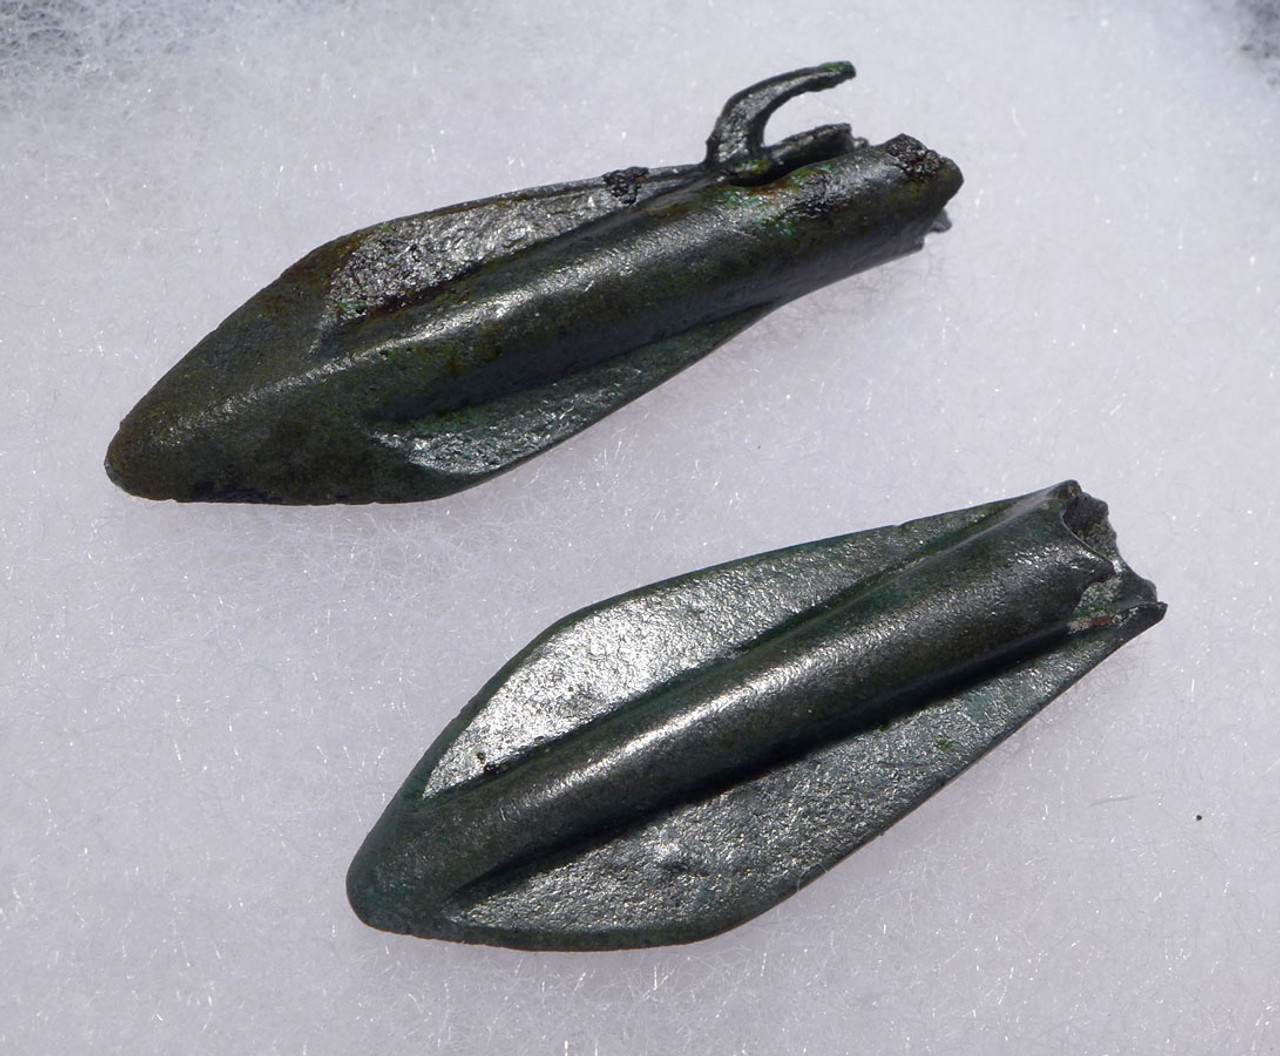 TWO LARGE EXCEPTIONAL ANCIENT GREEK MACEDONIA BRONZE ARROWHEADS *NE195